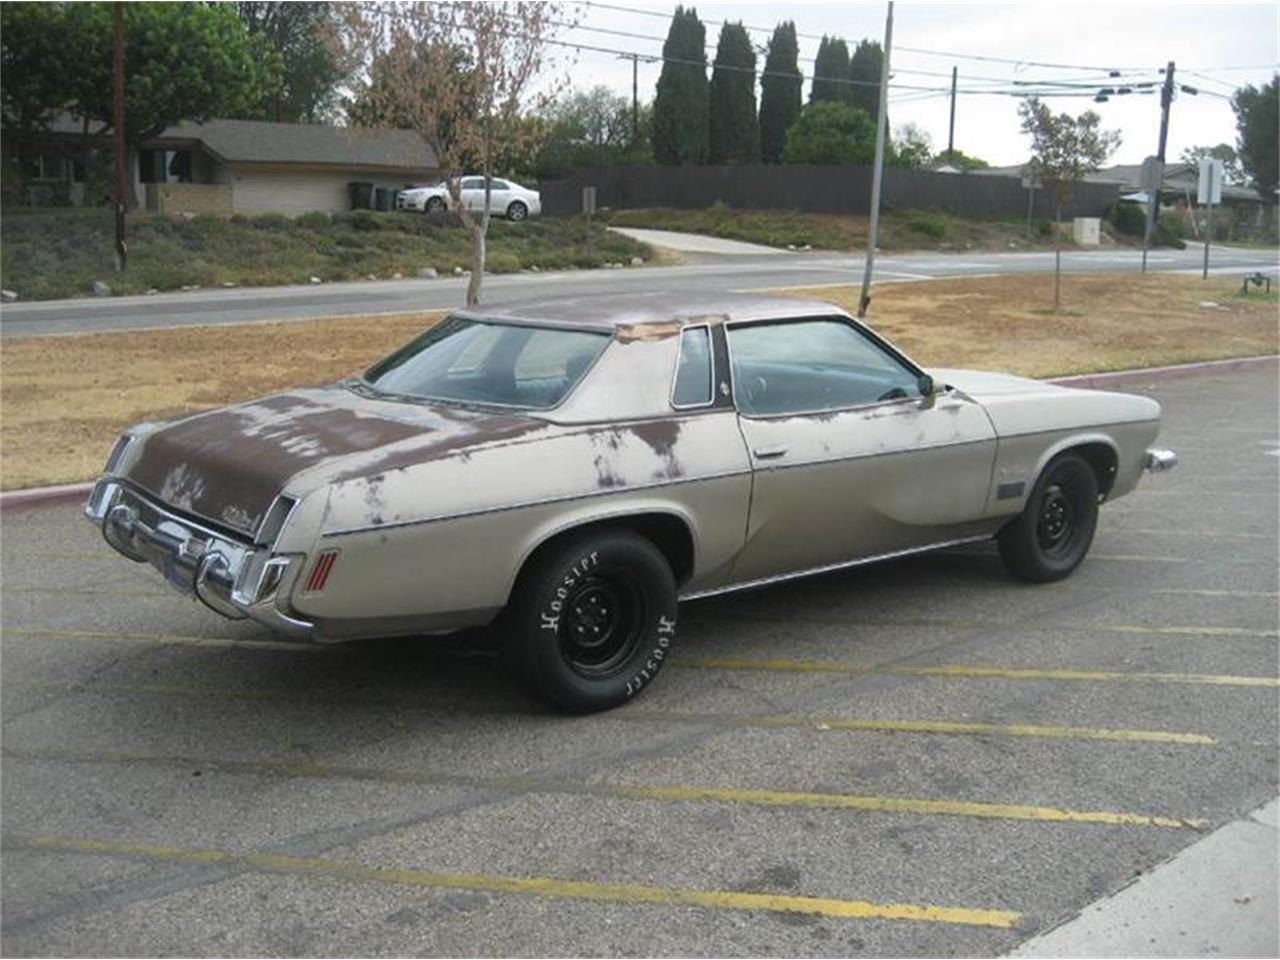 Large Picture of '73 Cutlass Supreme located in Brea California Auction Vehicle Offered by Highline Motorsports - J04S